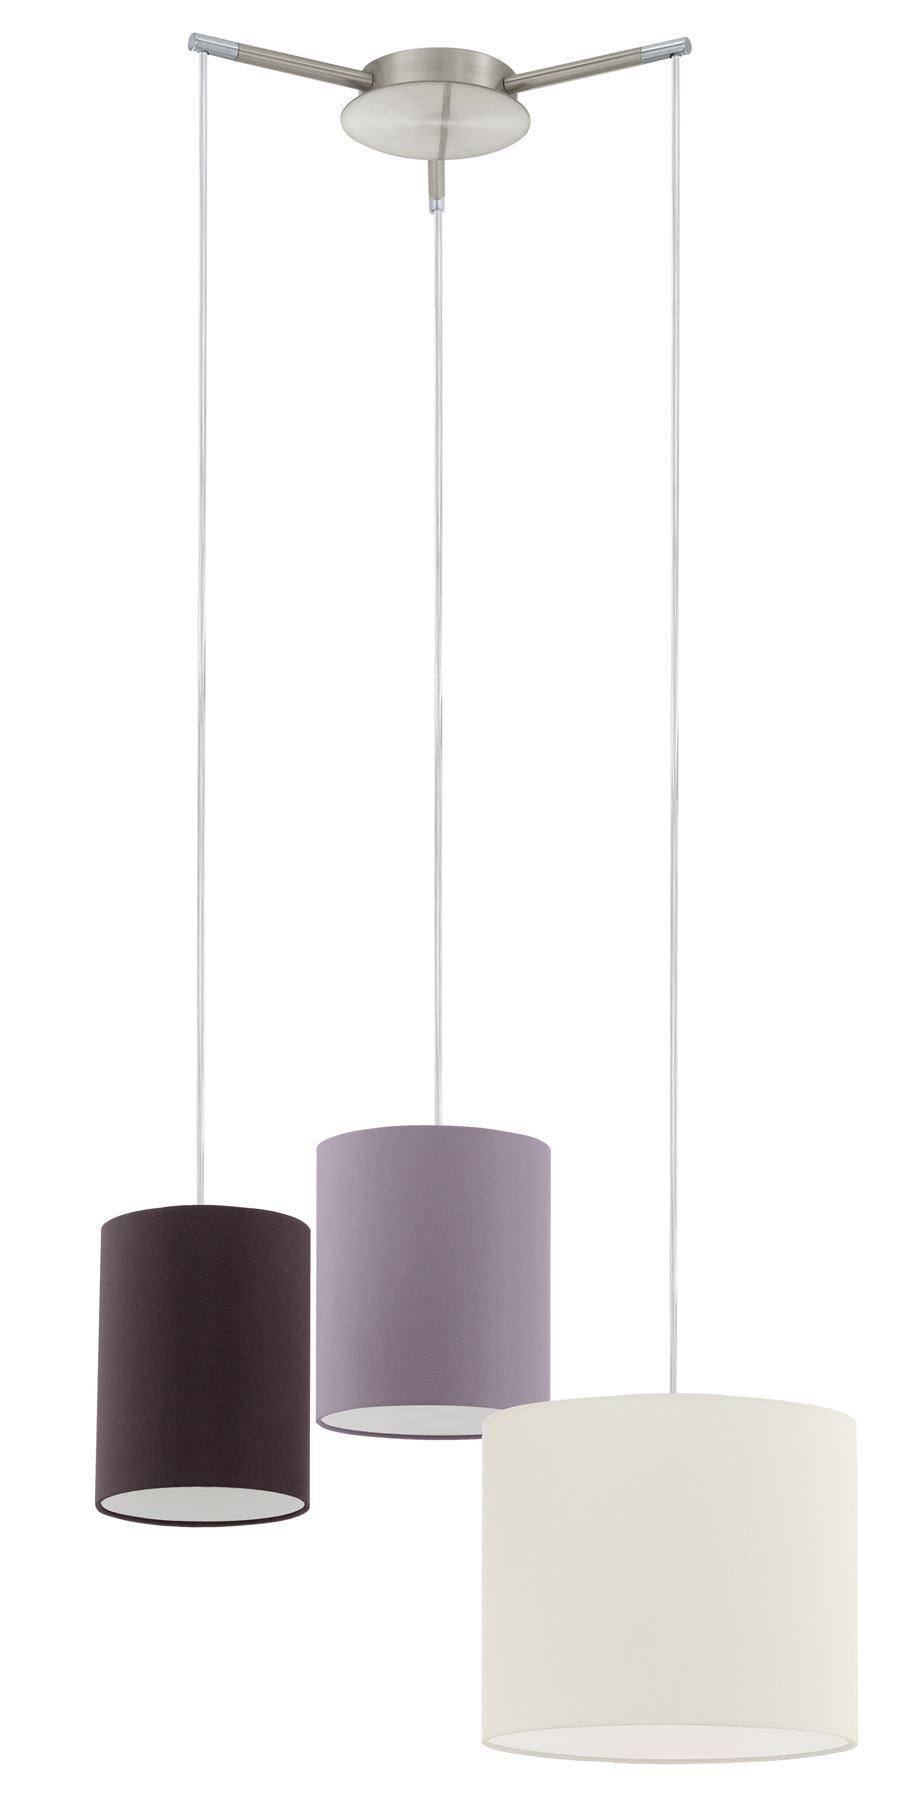 Tombolo 3 Hanging Light Cream, Taupe, Brown Shade